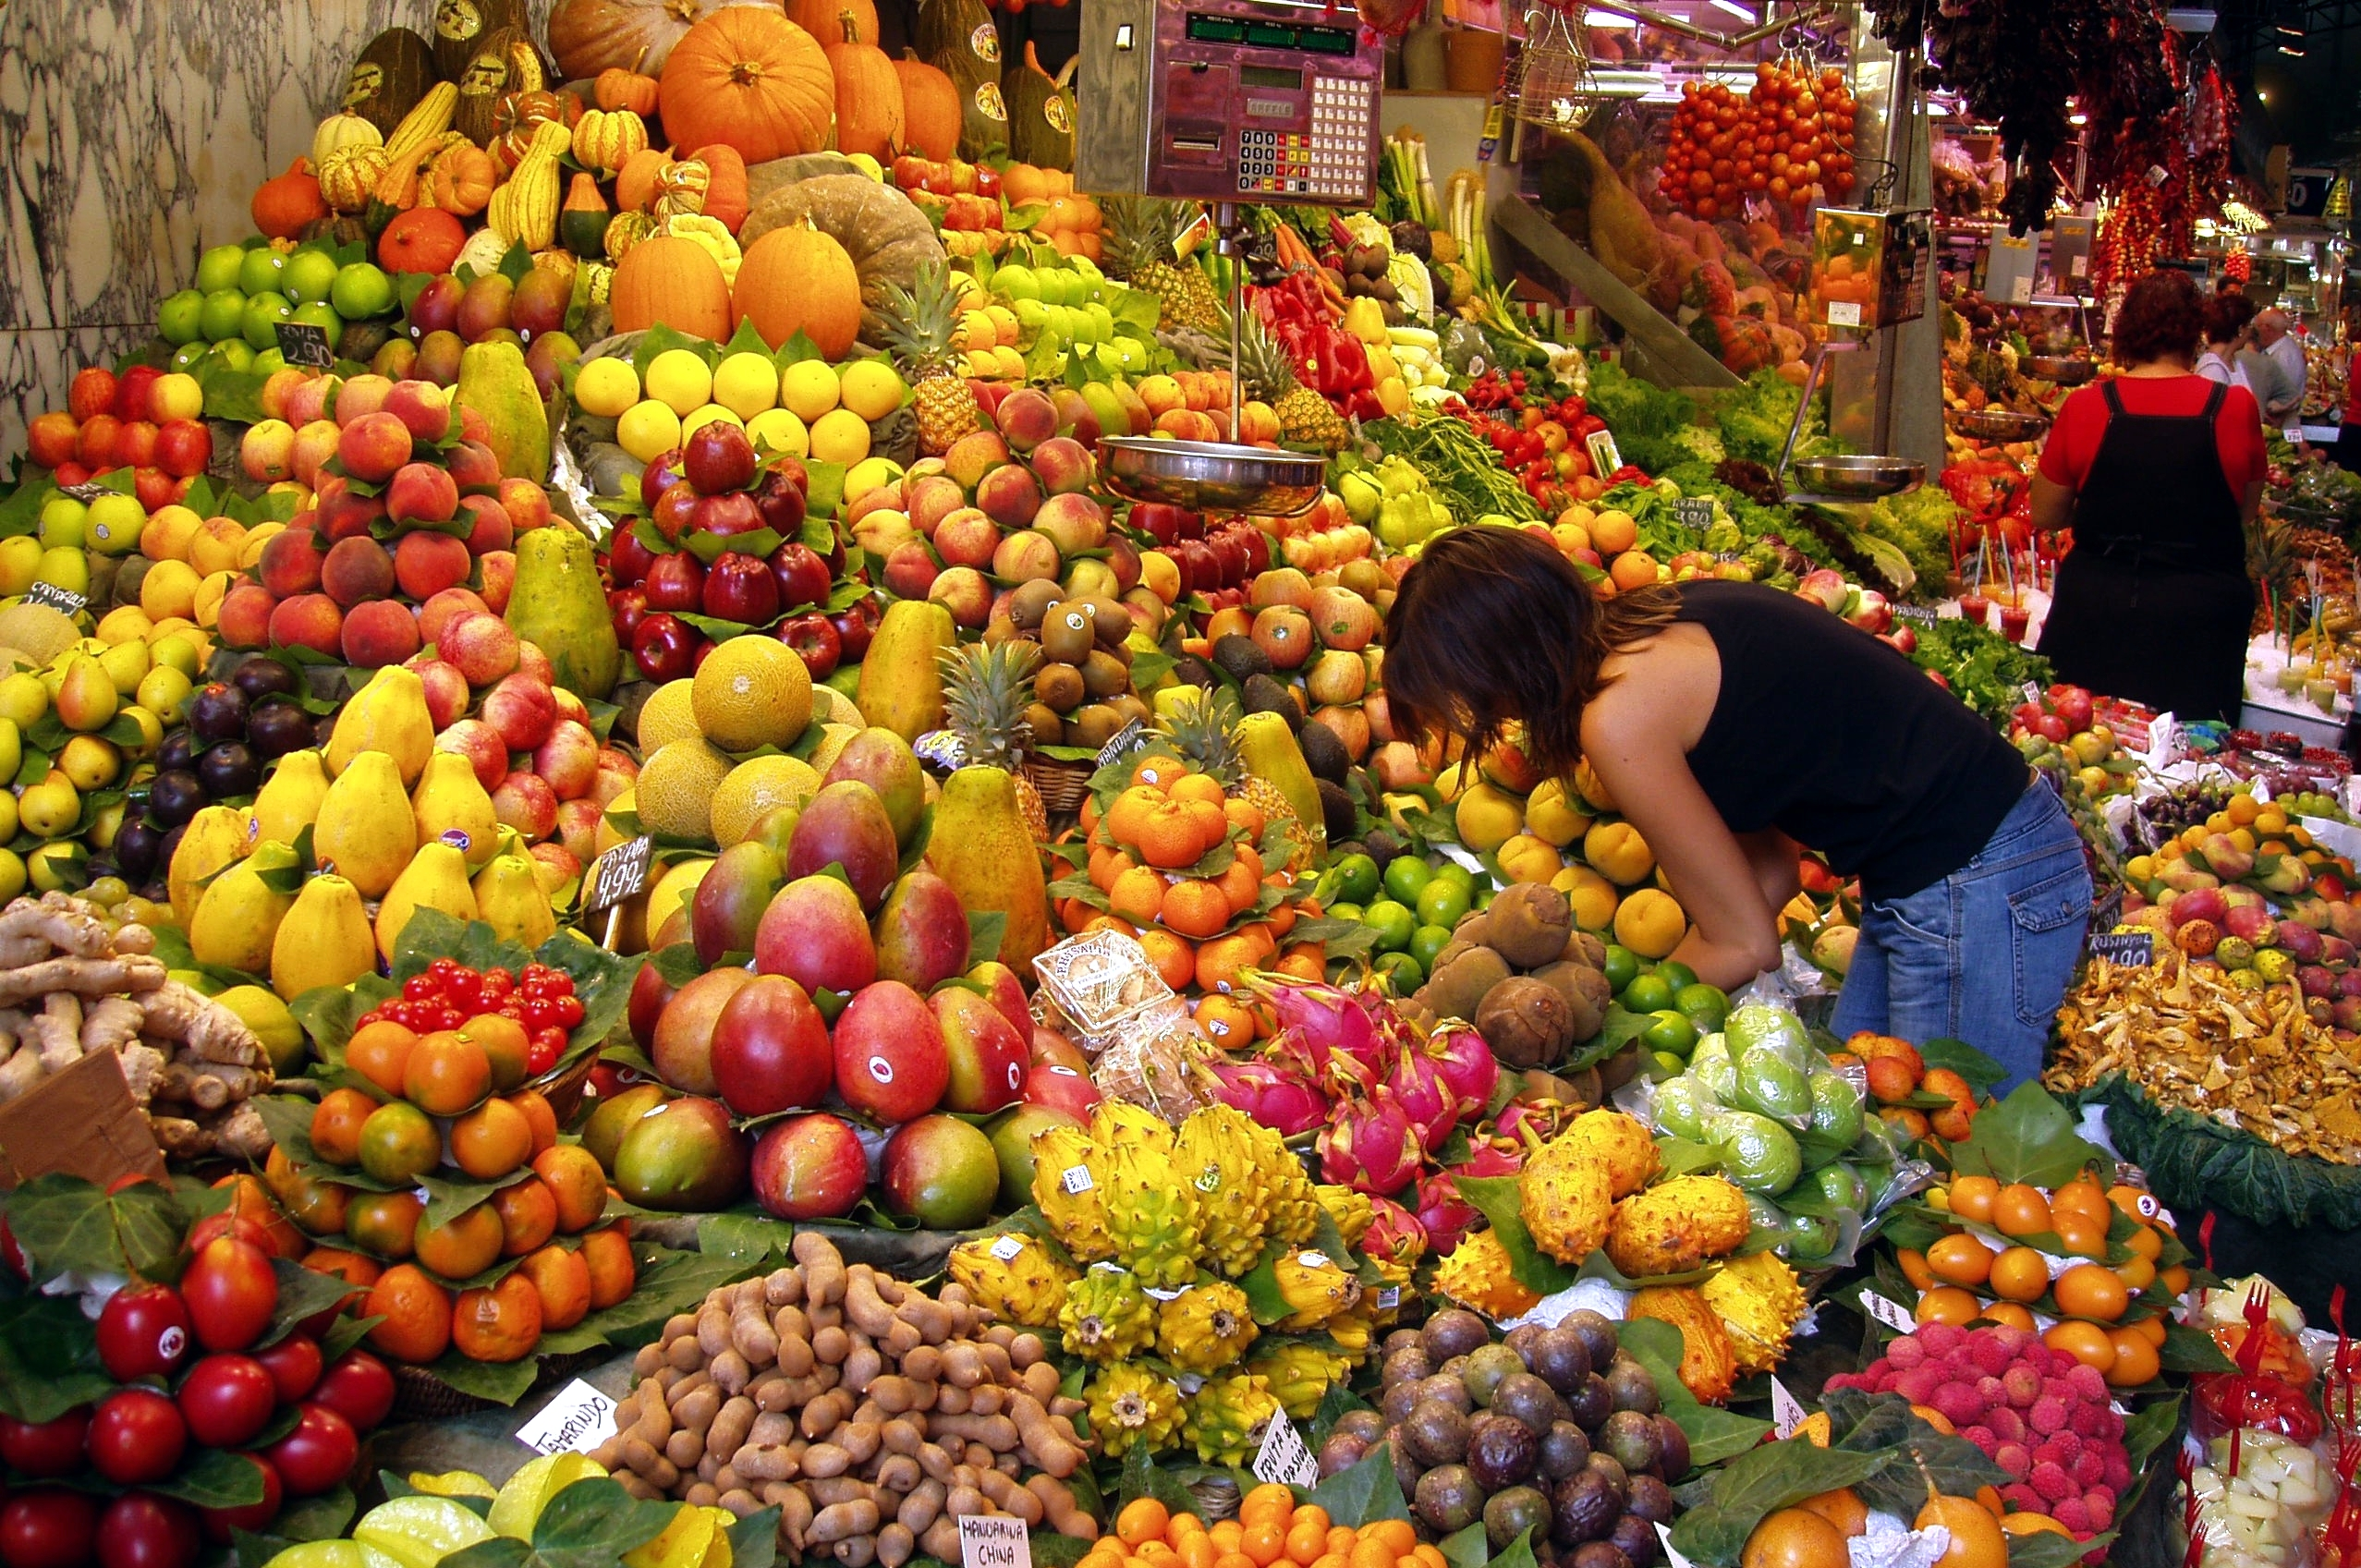 Fruits and vegetables reduce risks of strokes